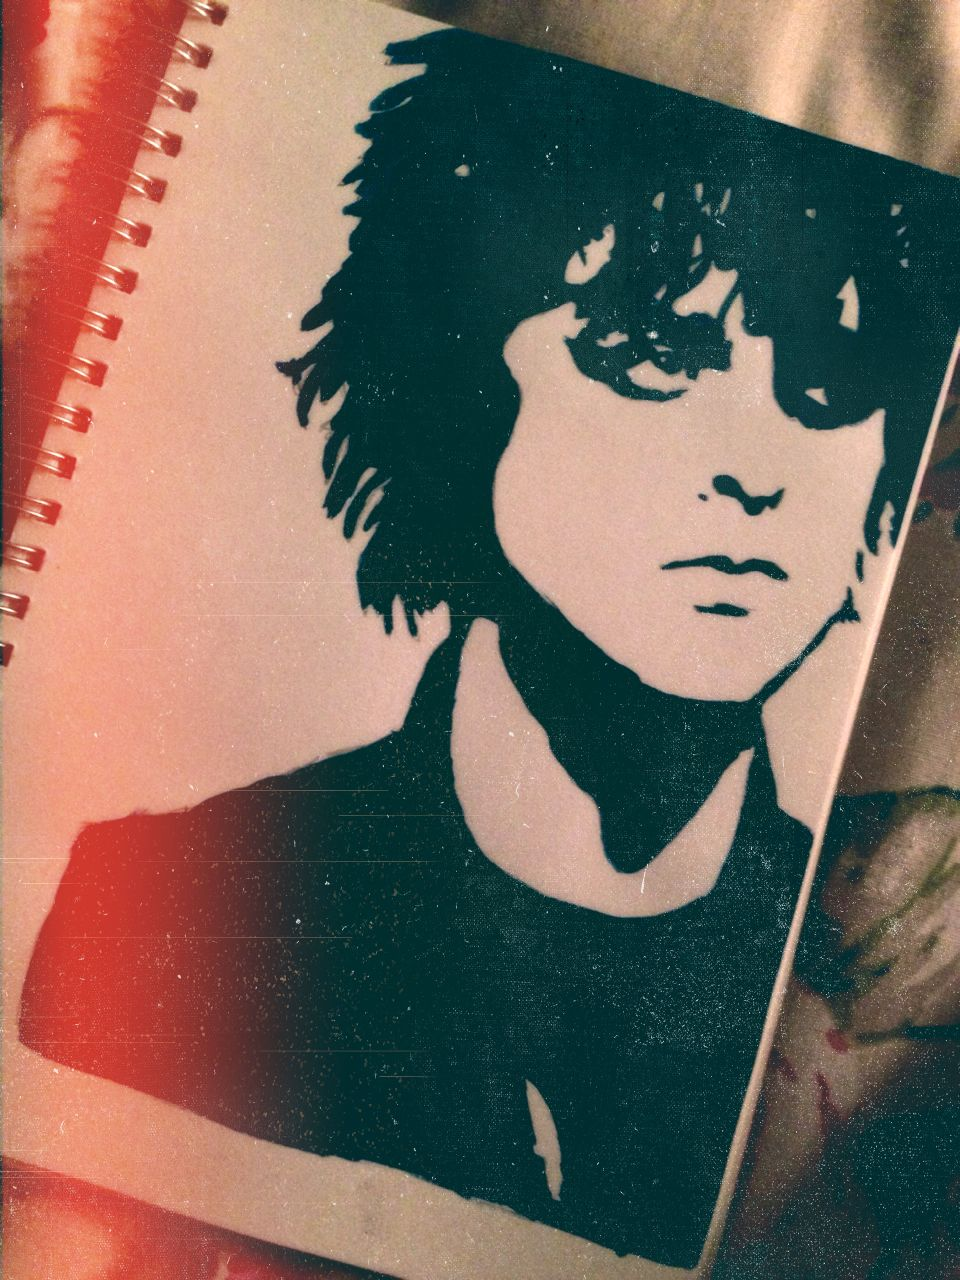 My own painting and edit of Billie Joe Armstrong Olivia